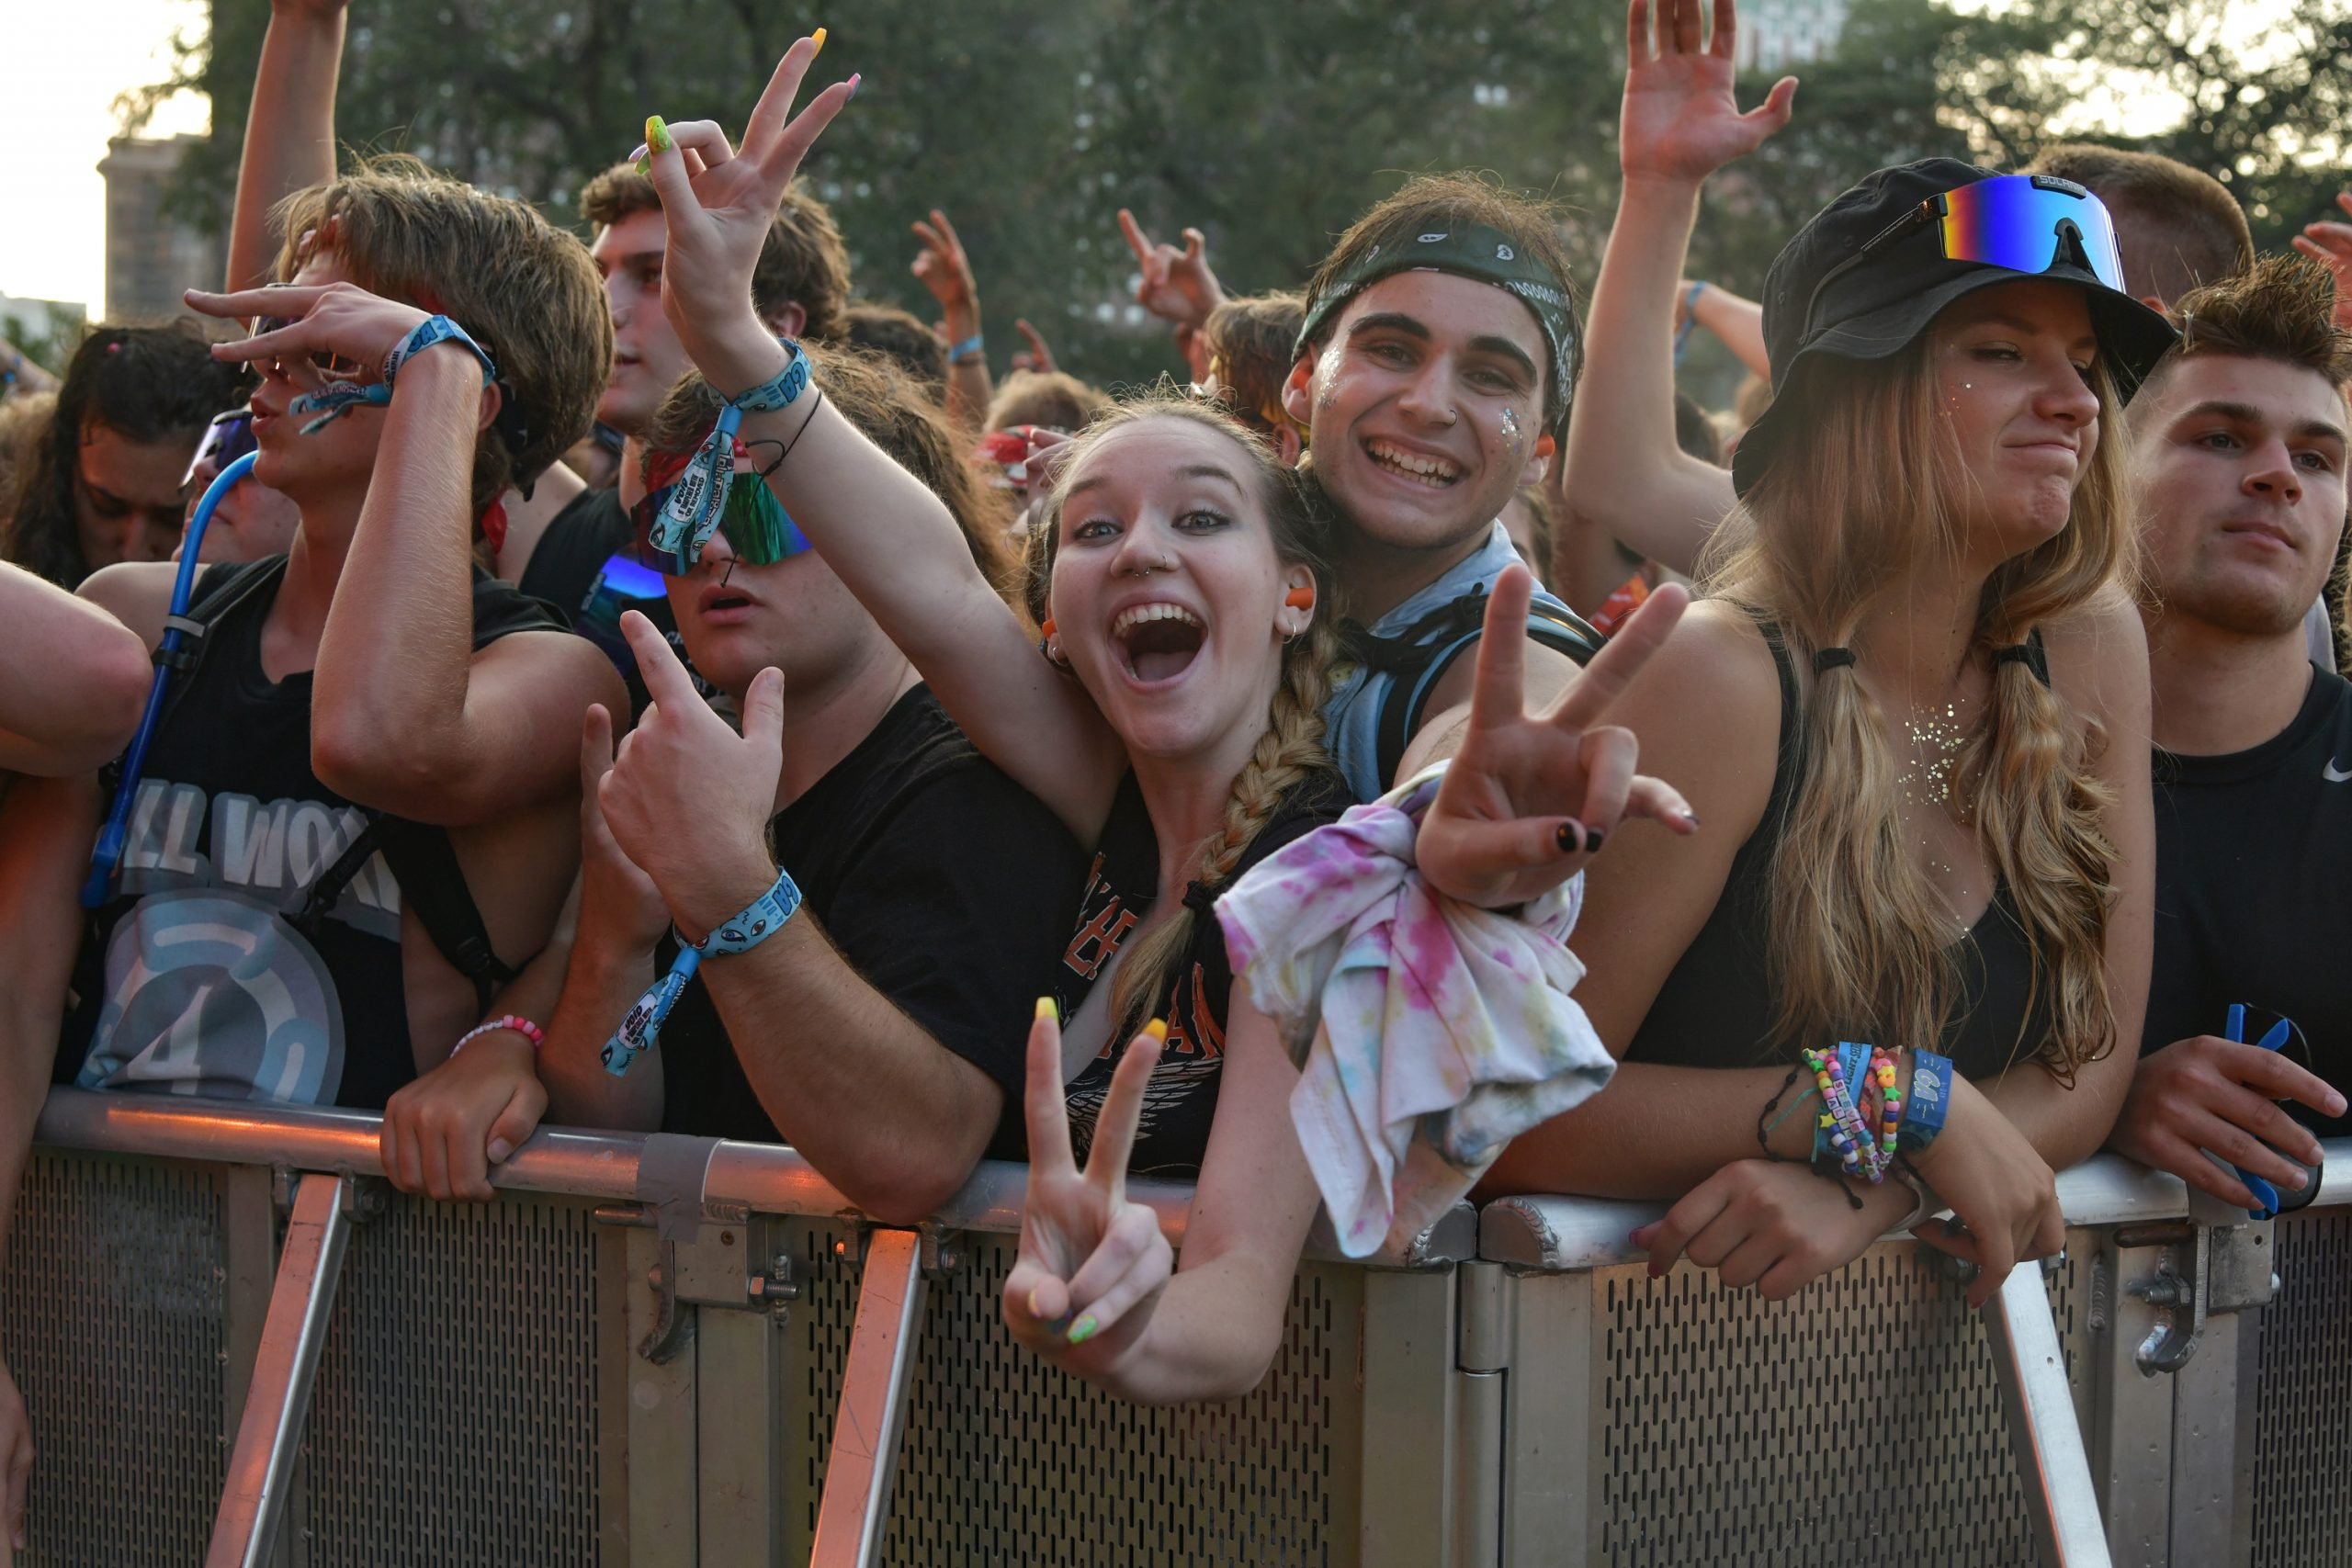 Miley Cyrus Puts The Icing On The Cake To A Great First Day Of Lollapalooza 8